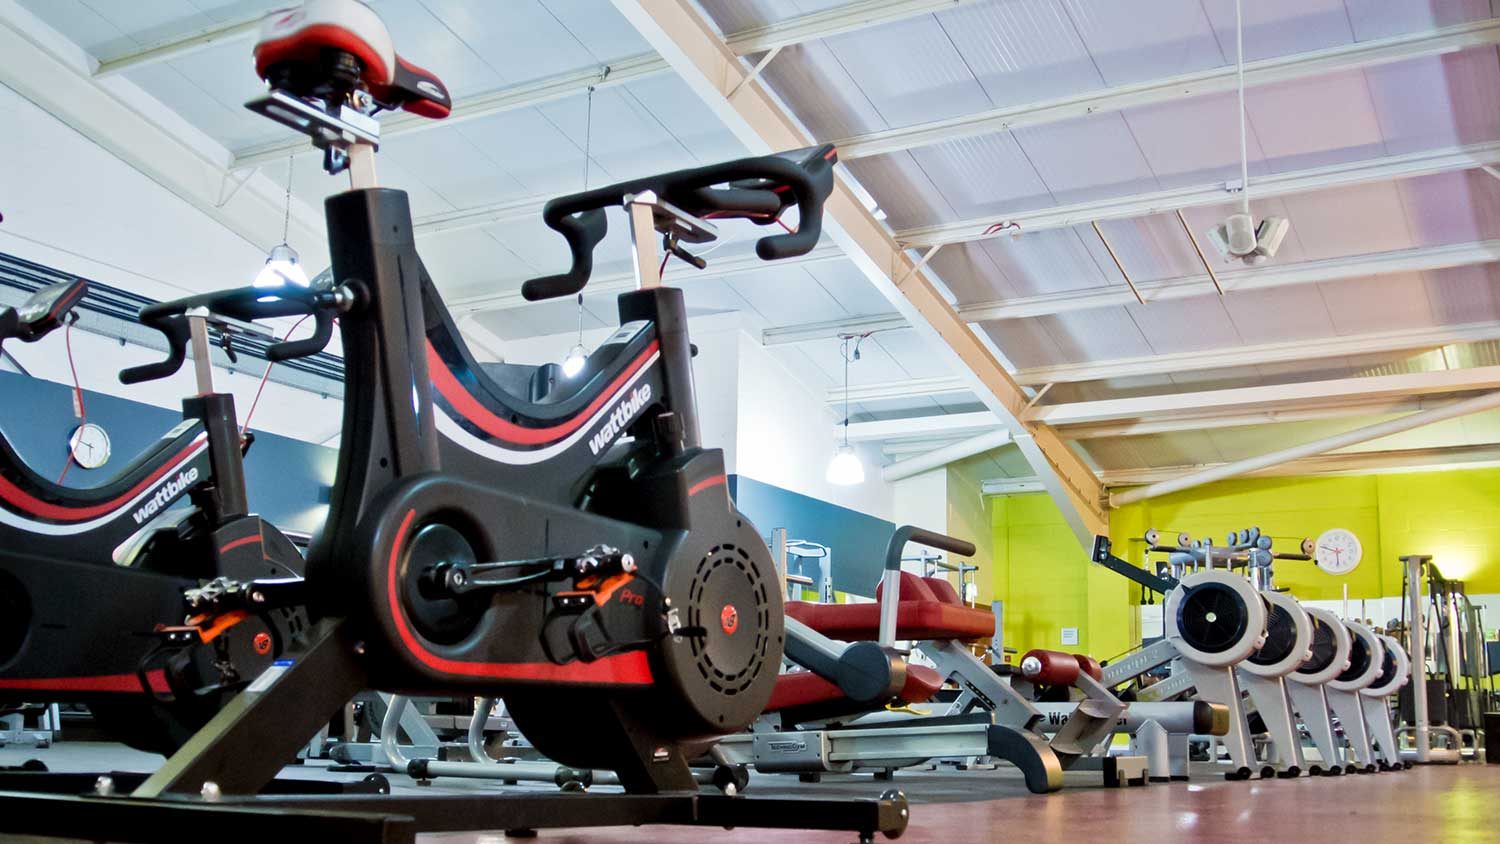 Fitness Equipment at The Oxfordshire Health & Racquets Club